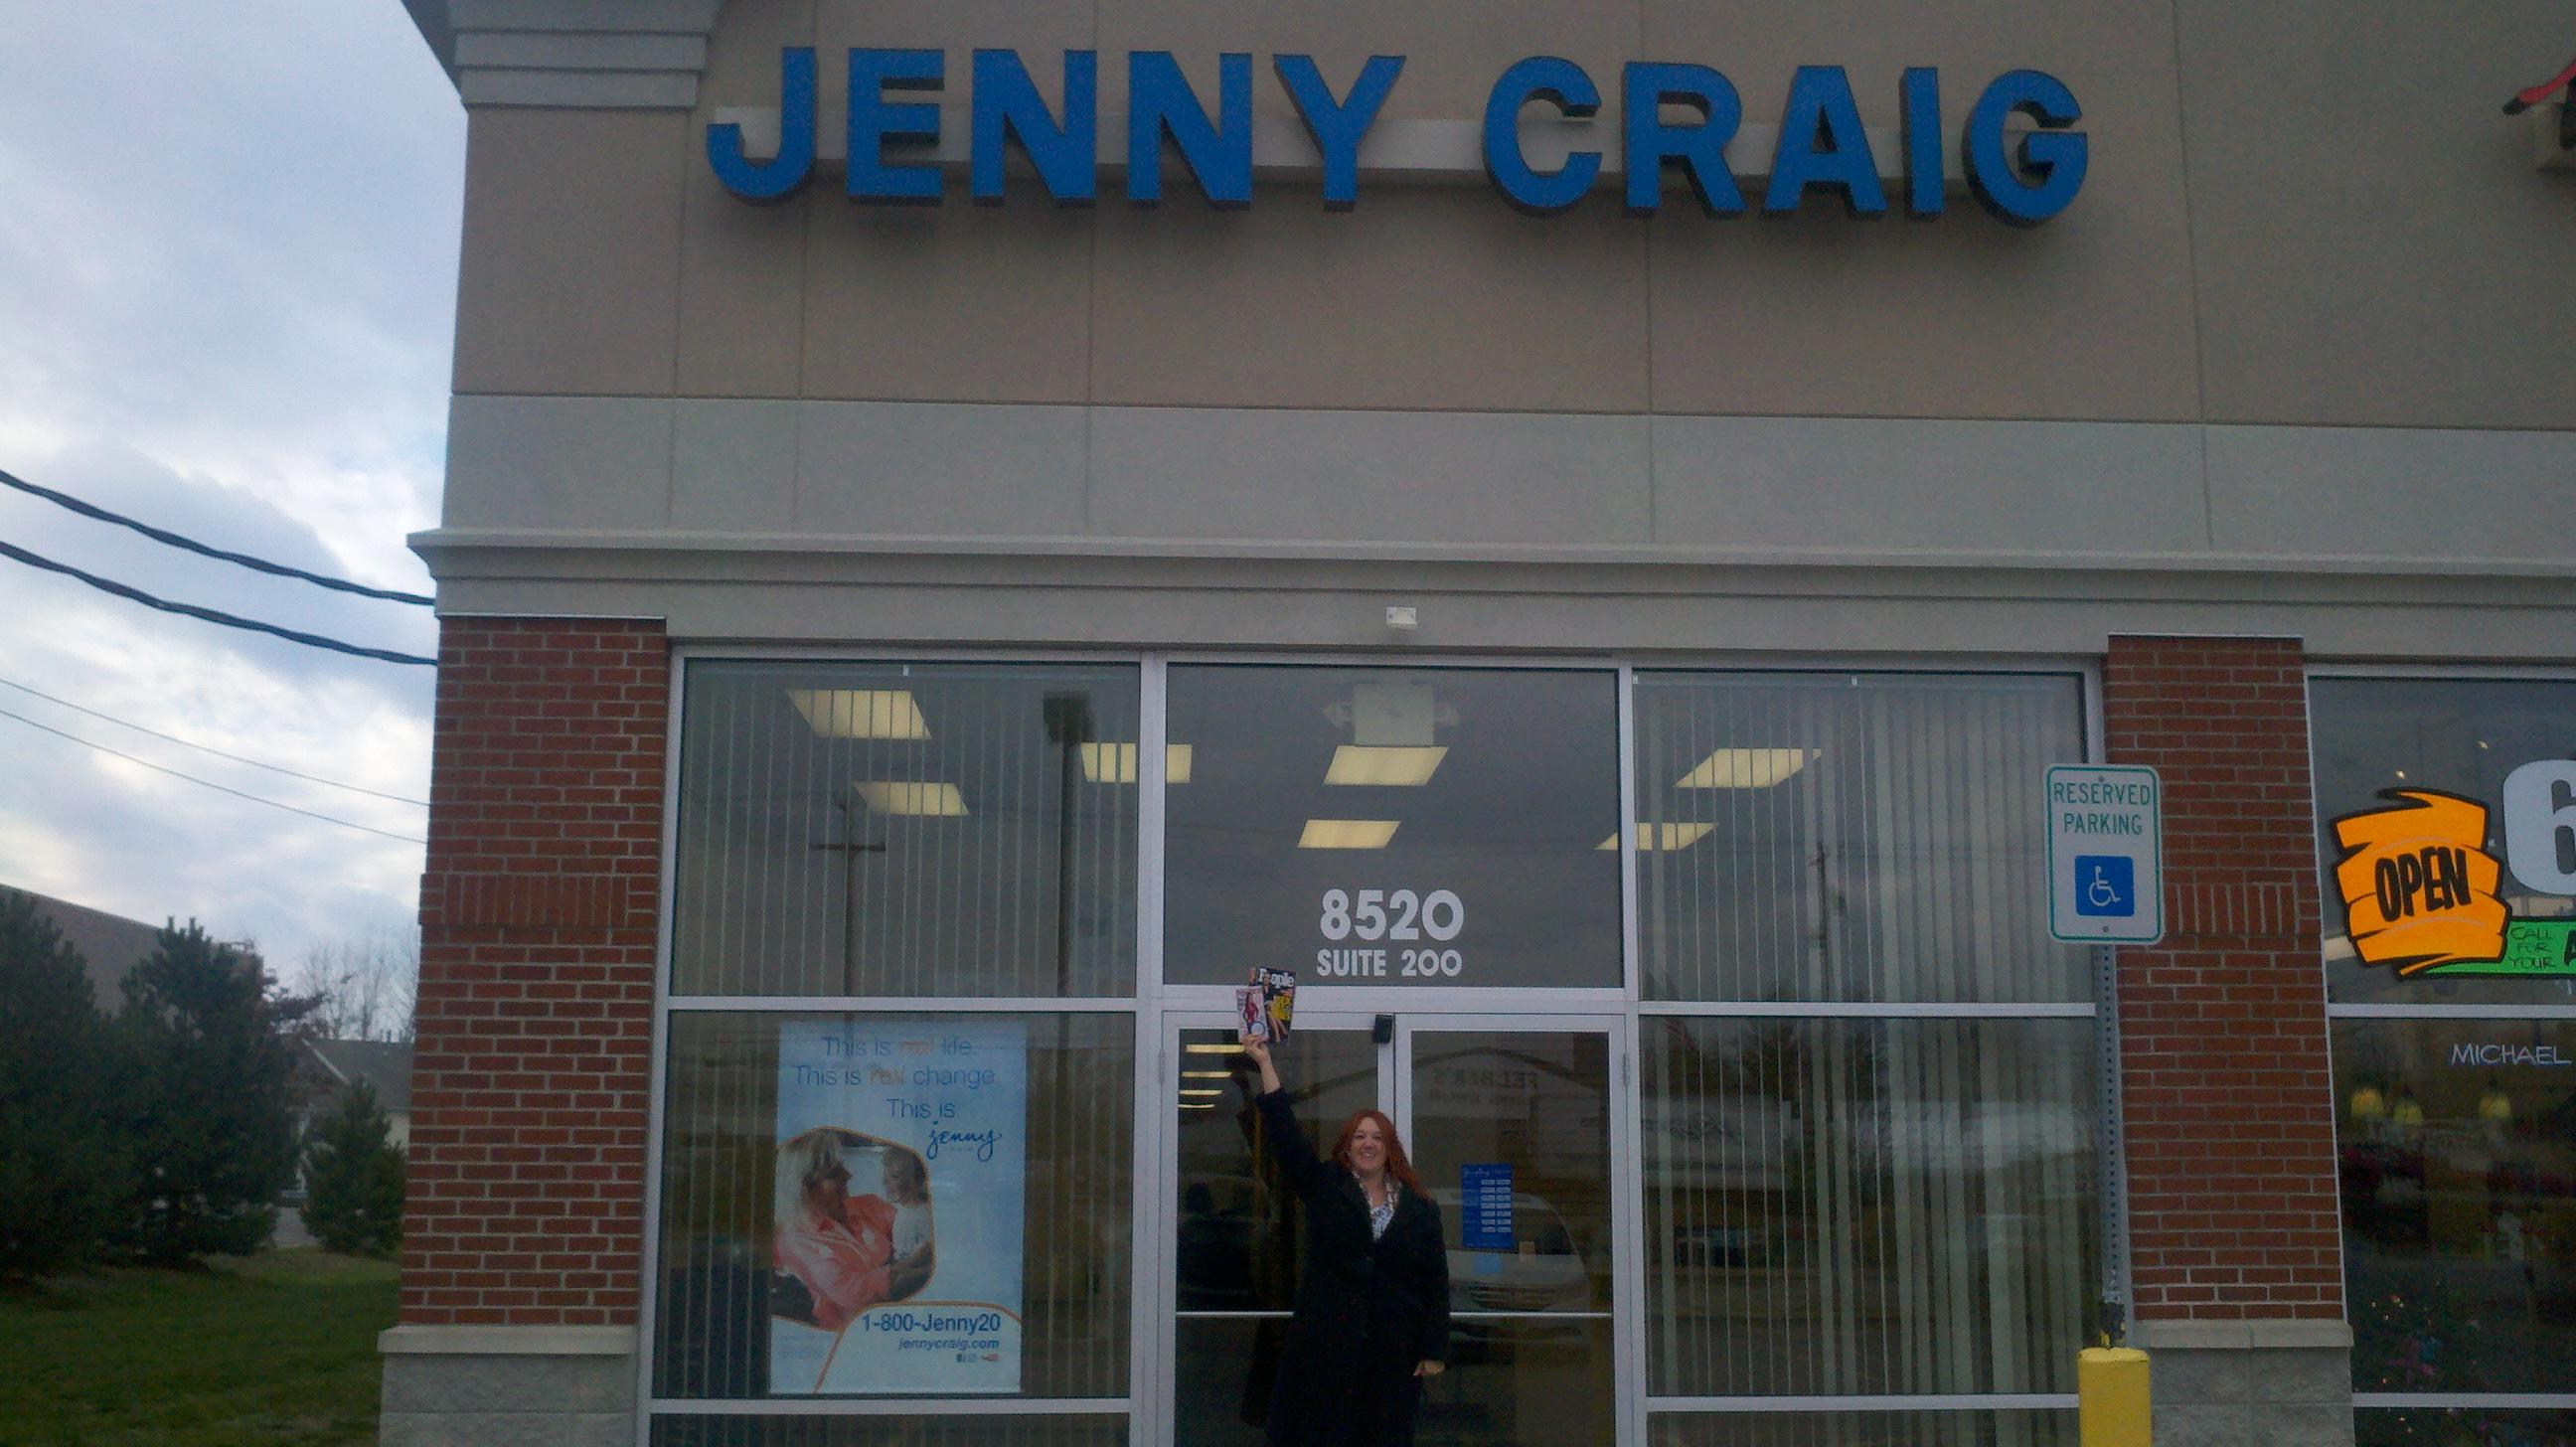 Jenny Craig Williamsville Weight Loss Centers in Williamsville, NY